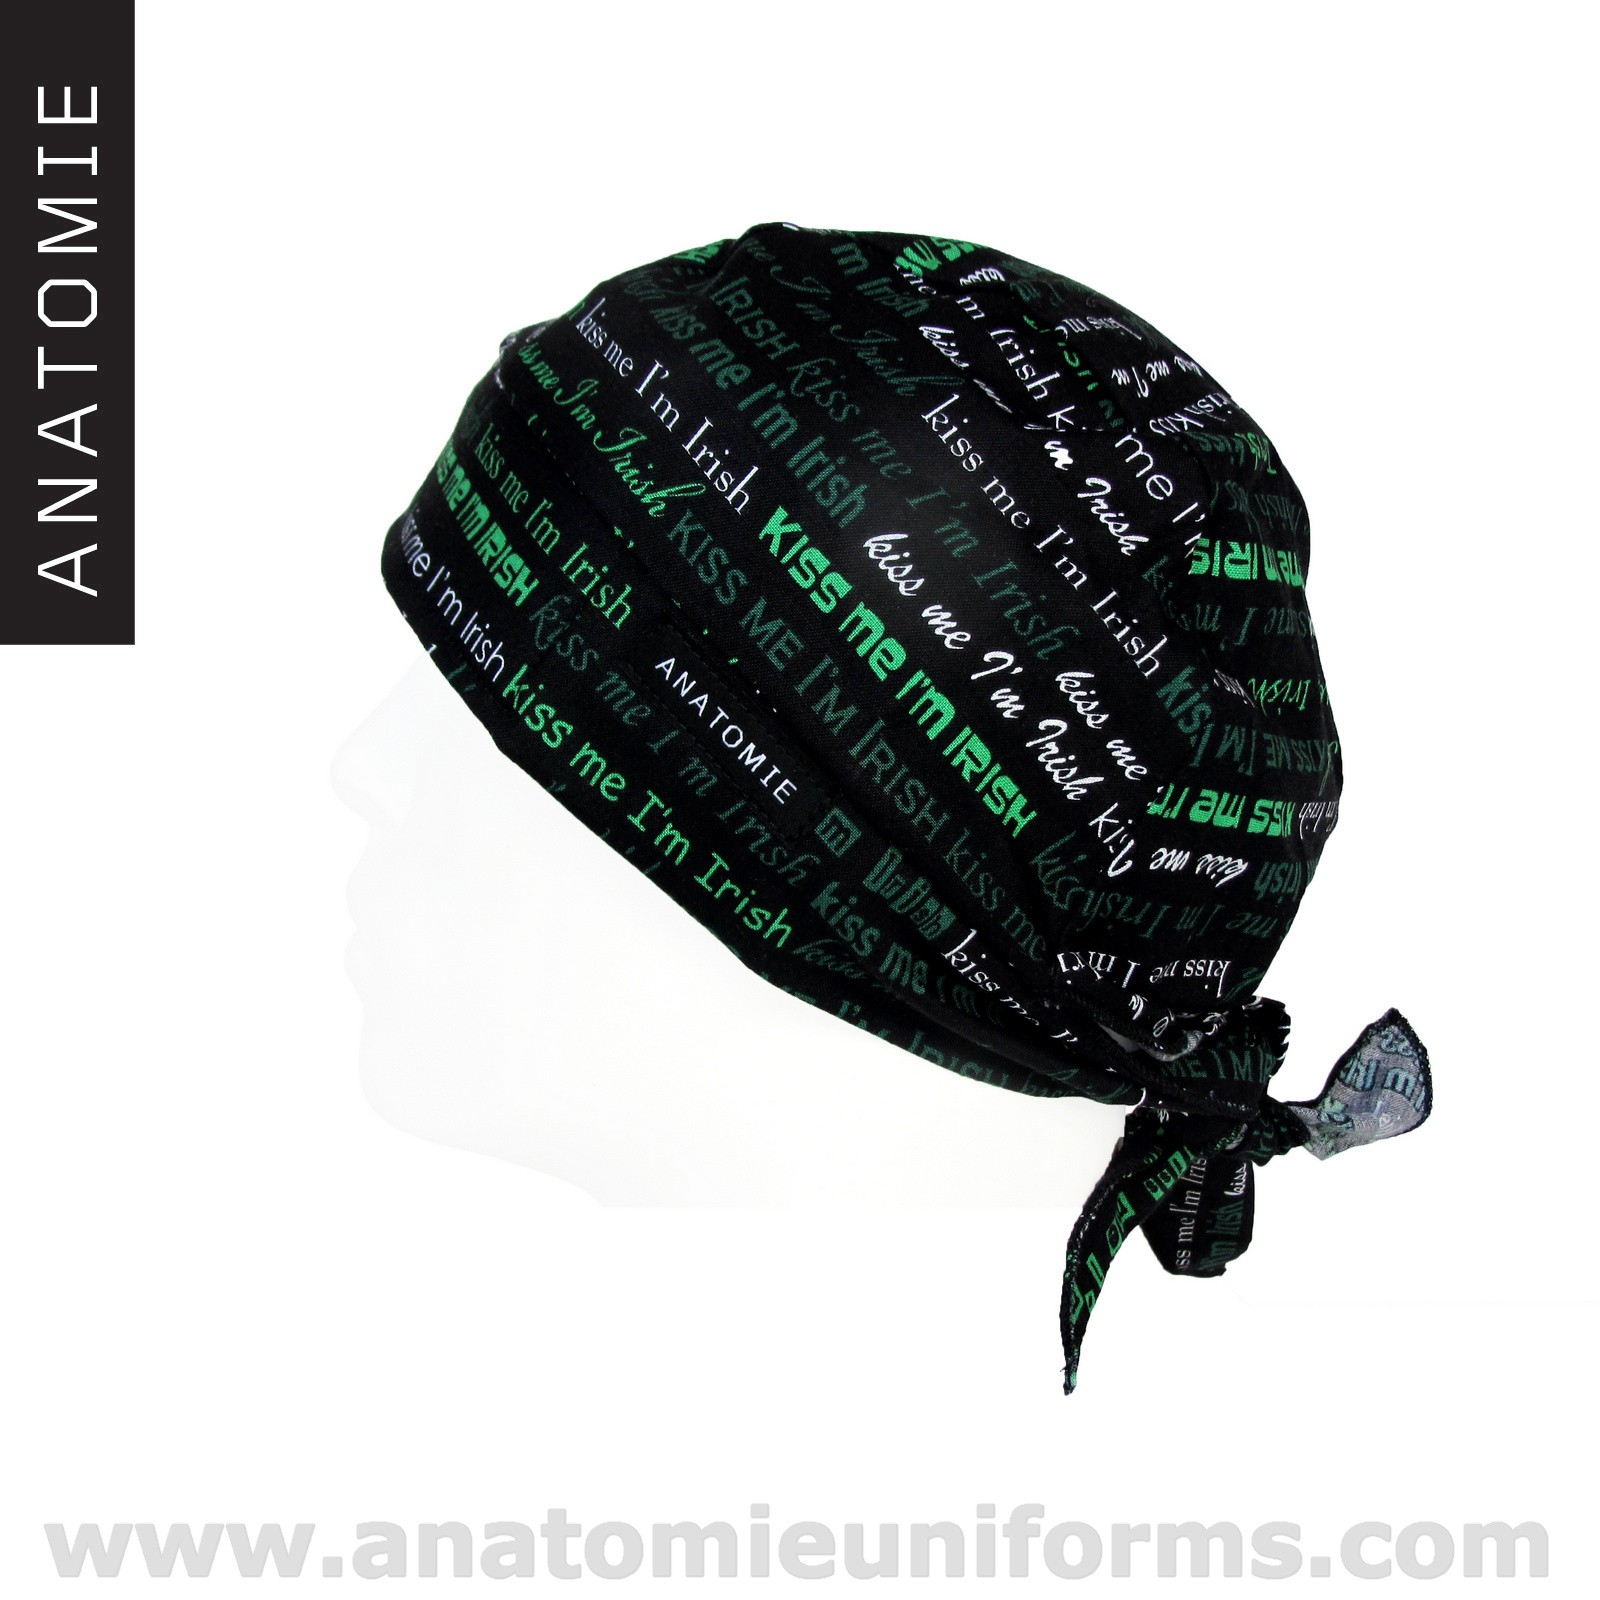 ANATOMIE BANDANA Surgical Irish - 014